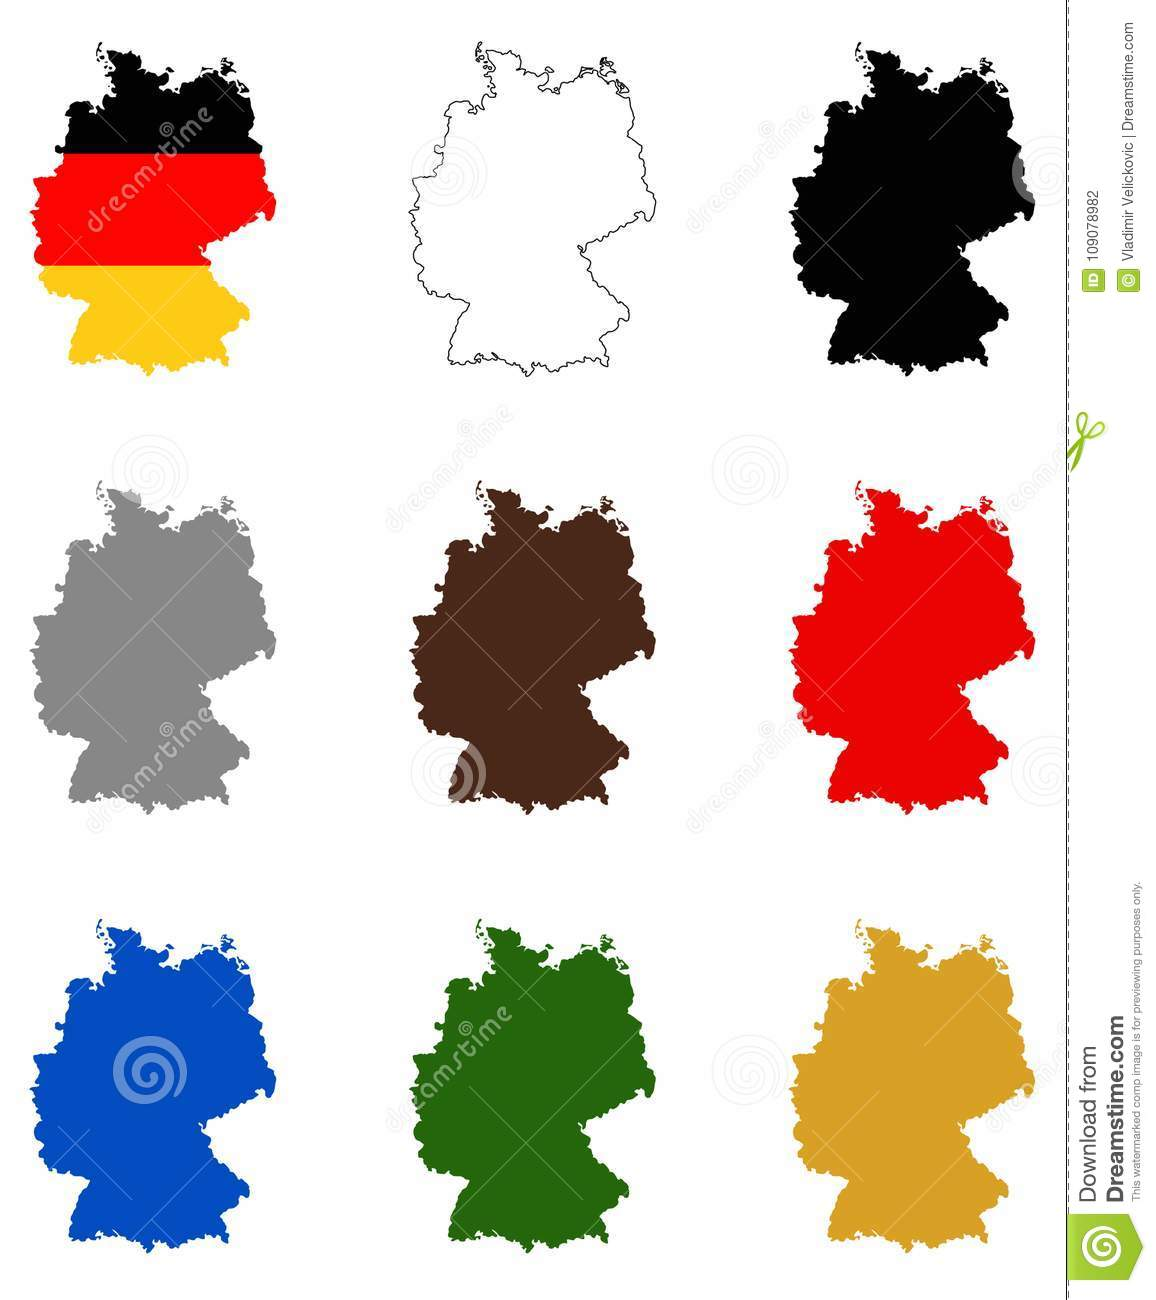 Germany Map And Flag - Country In Central-western Europe ... on south sudan flag and map, england flag and map, slovakia flag and map, mozambique flag and map, british flag and map, iran flag and map, kuwait flag and map, france flag and map, arizona flag and map, malaysia flag and map, israel flag and map, syria flag and map, belize flag and map, portugal flag and map, zambia flag and map, chad flag and map, china flag and map, ireland flag and map, lebanon flag and map, ukraine flag and map,